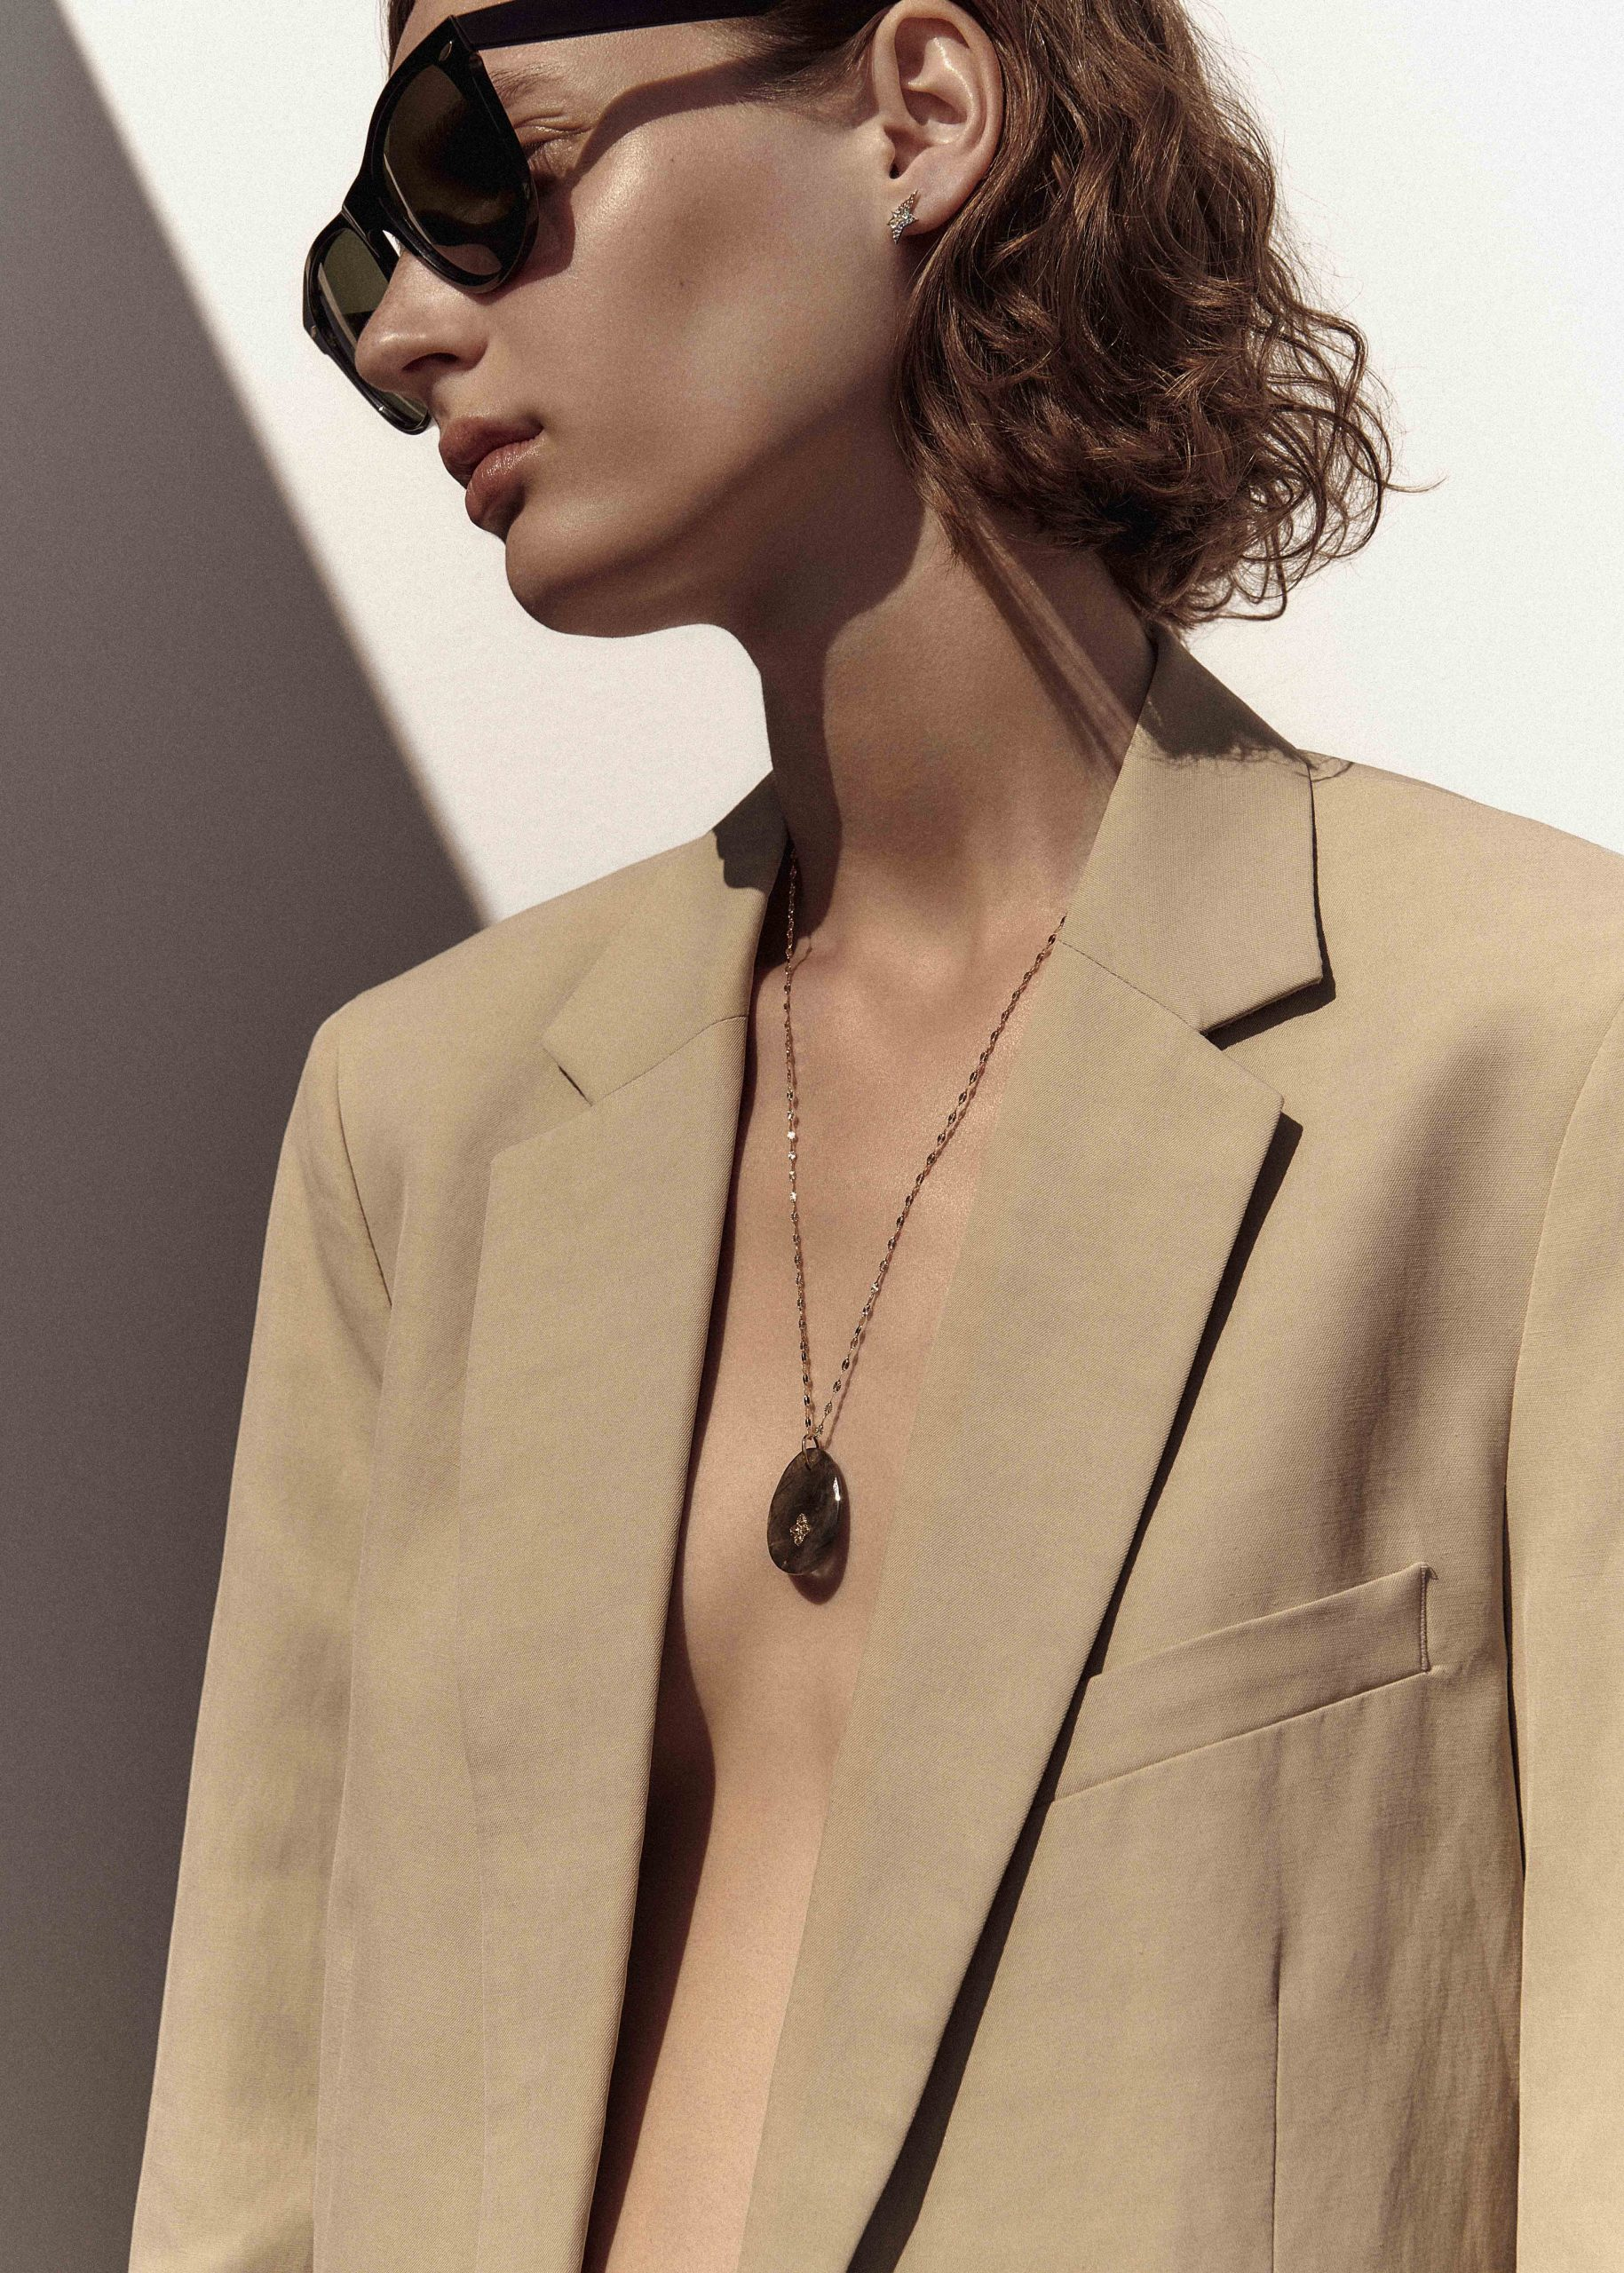 Pascale Monvoisin Spring 2021 Lookbook Photos